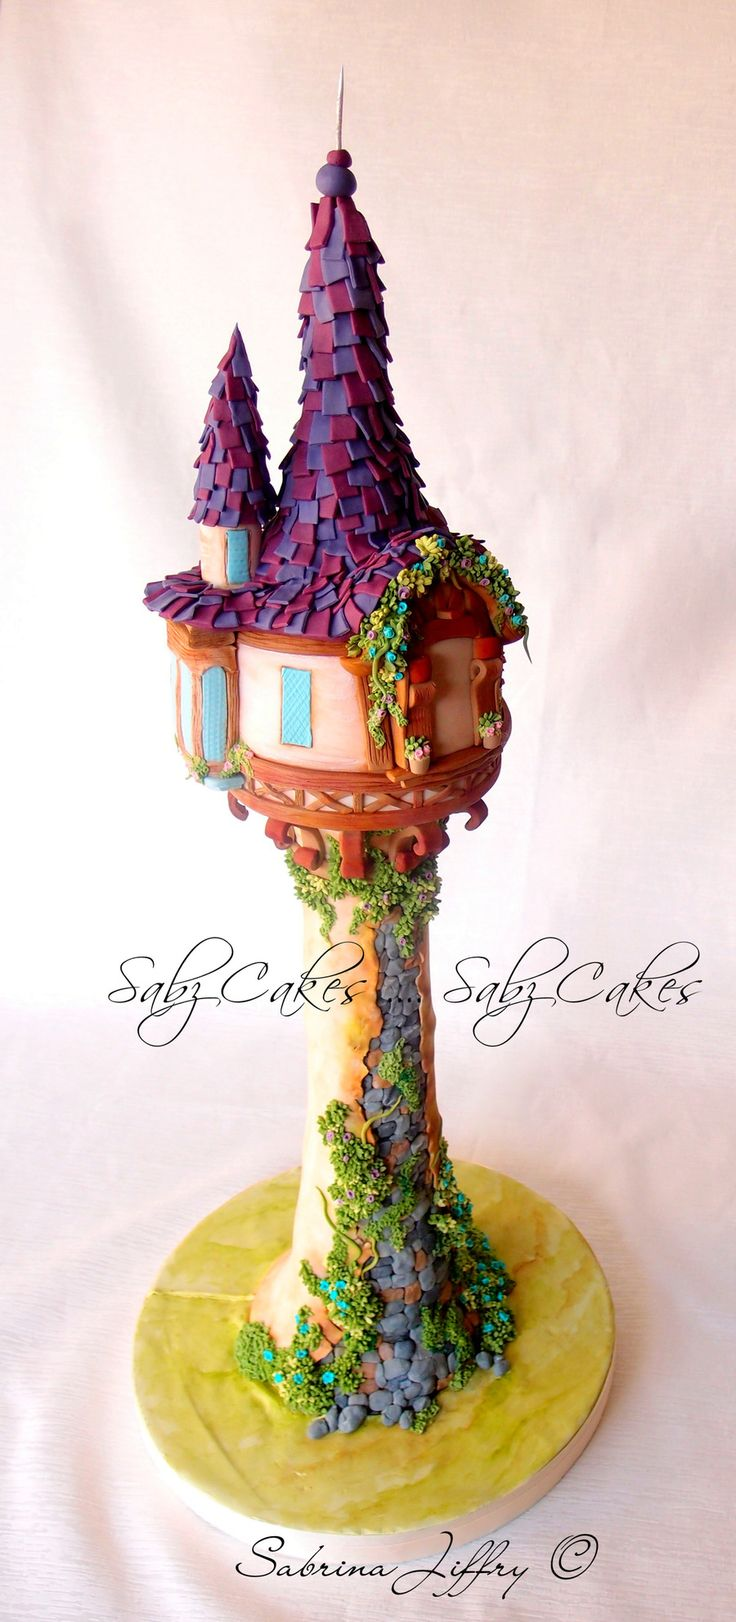 The Tangled Tower Done For My Daughters 4Th Bday I Wanted To Add More Details But It Was A Very Busy Week Amp I Ran Out Of Time It The...